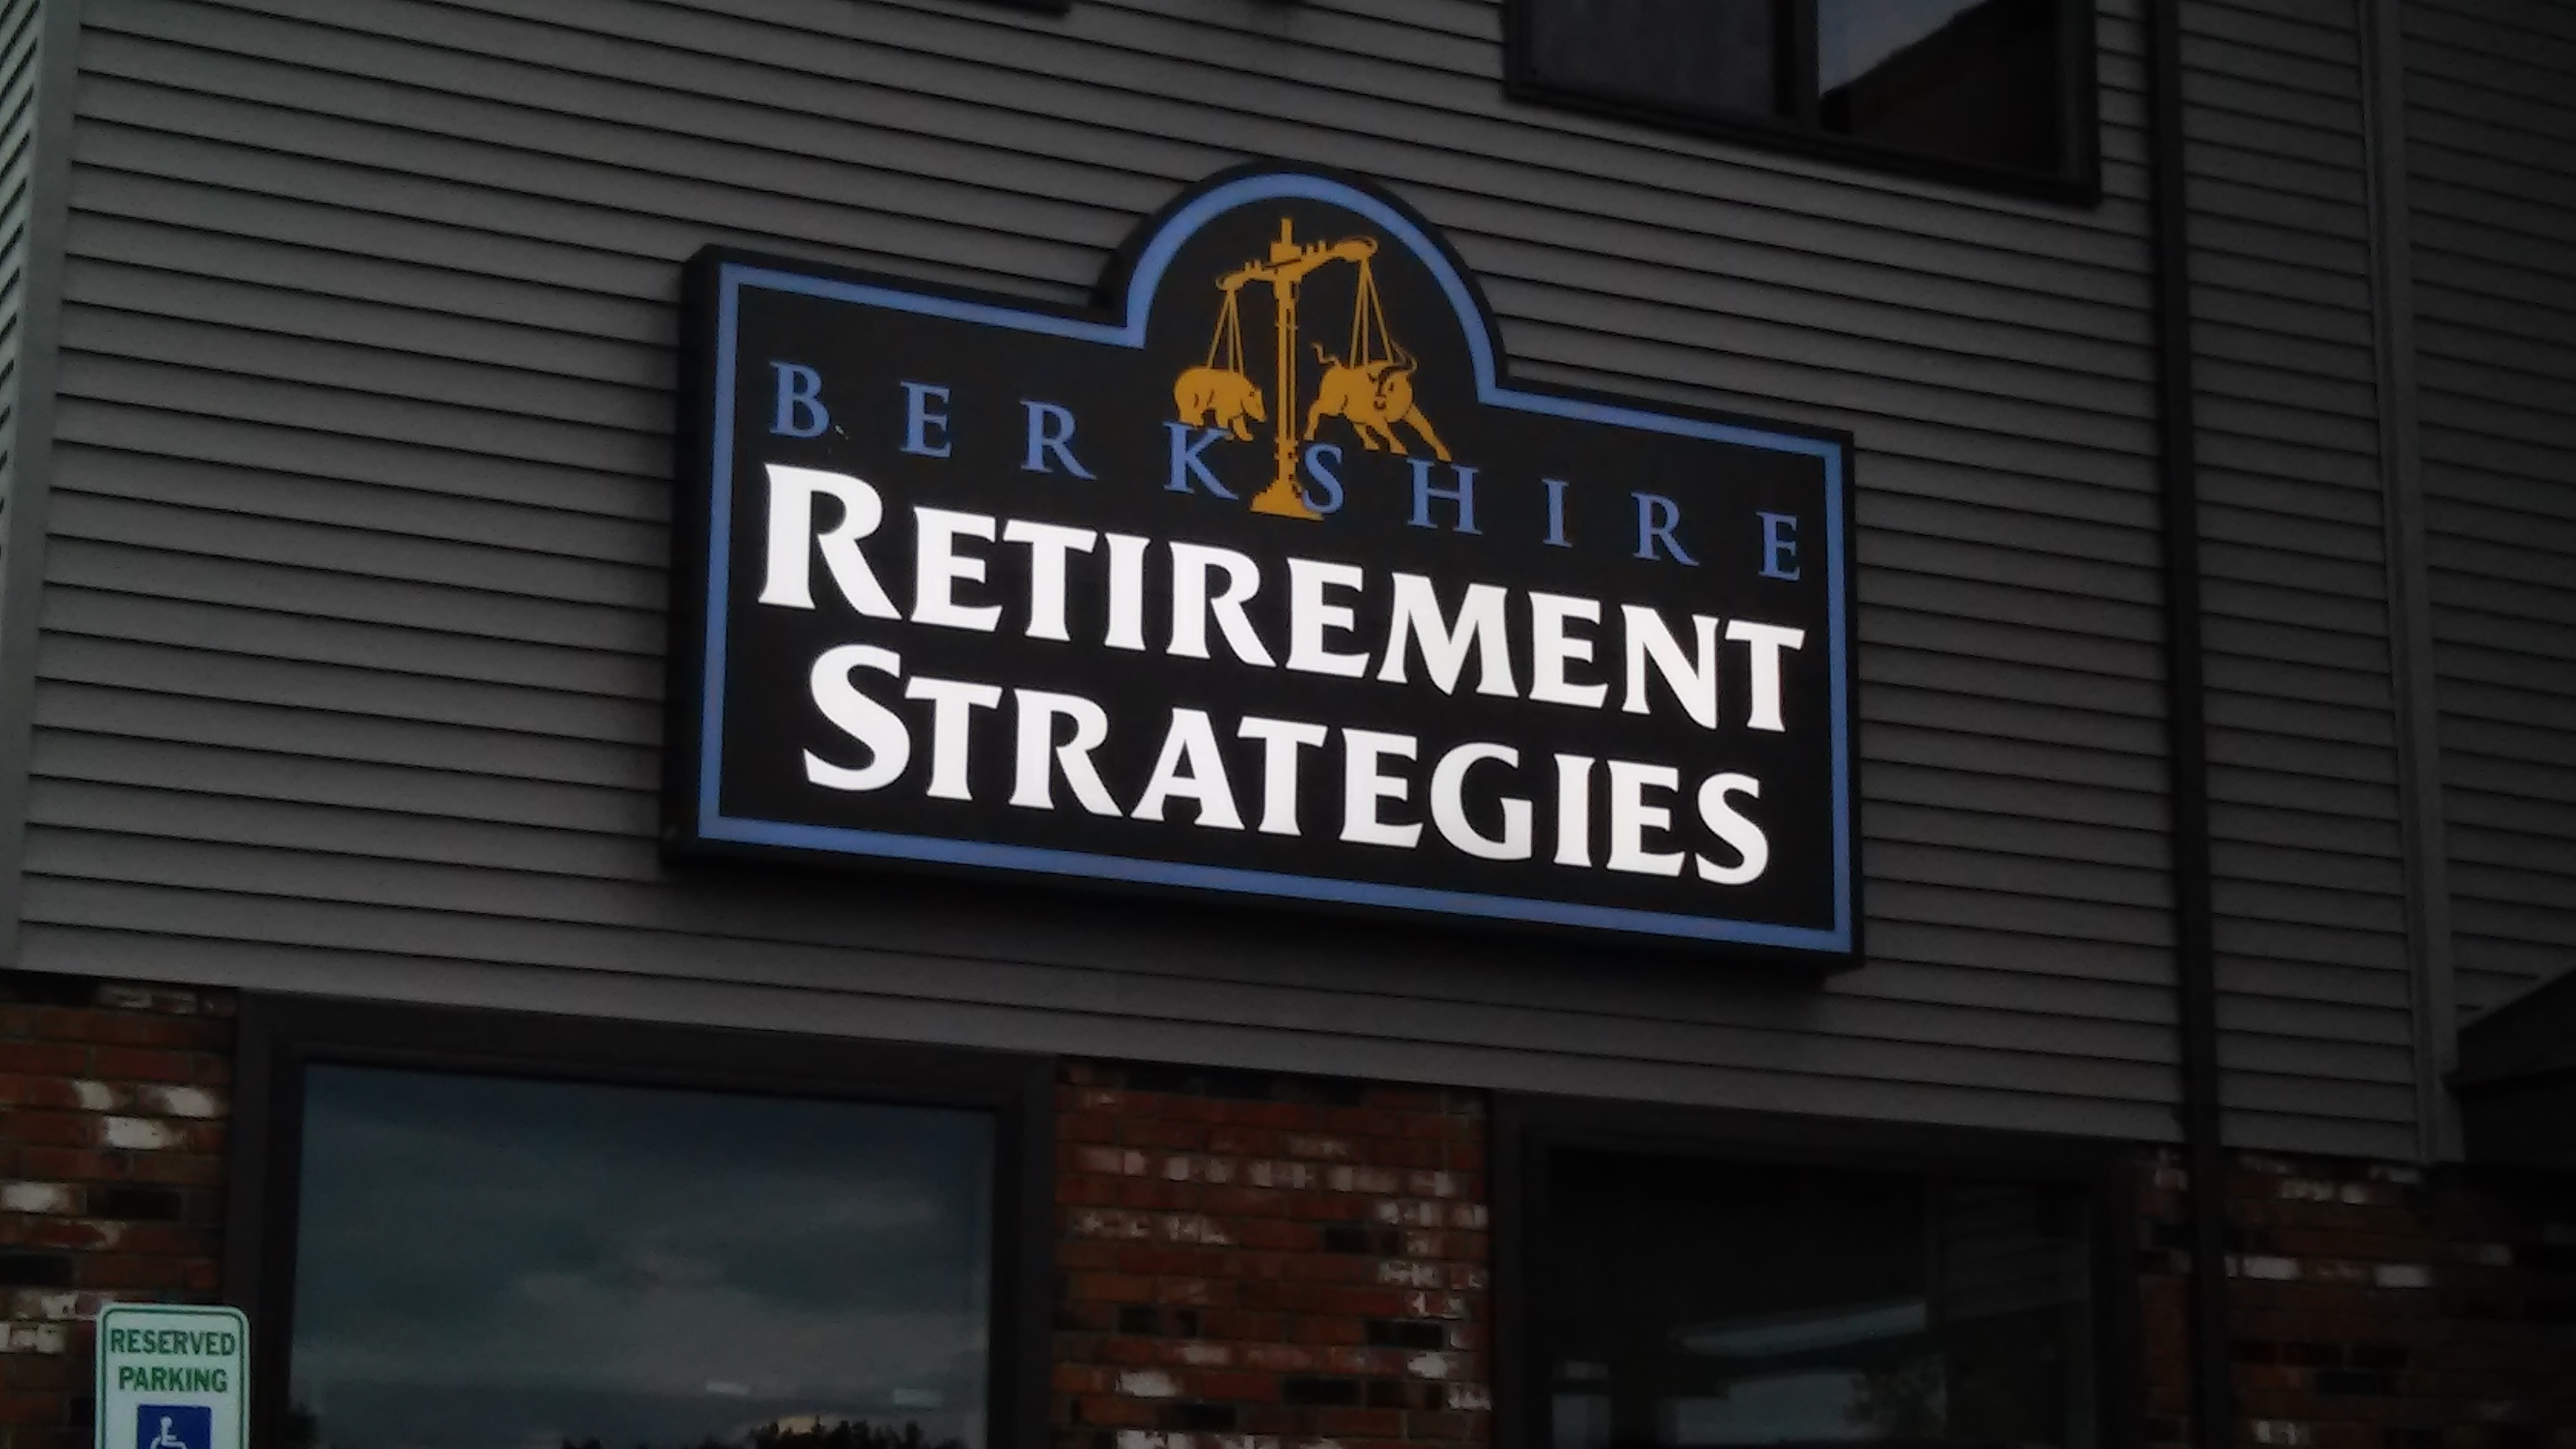 Berkshire Retirement Stratiges